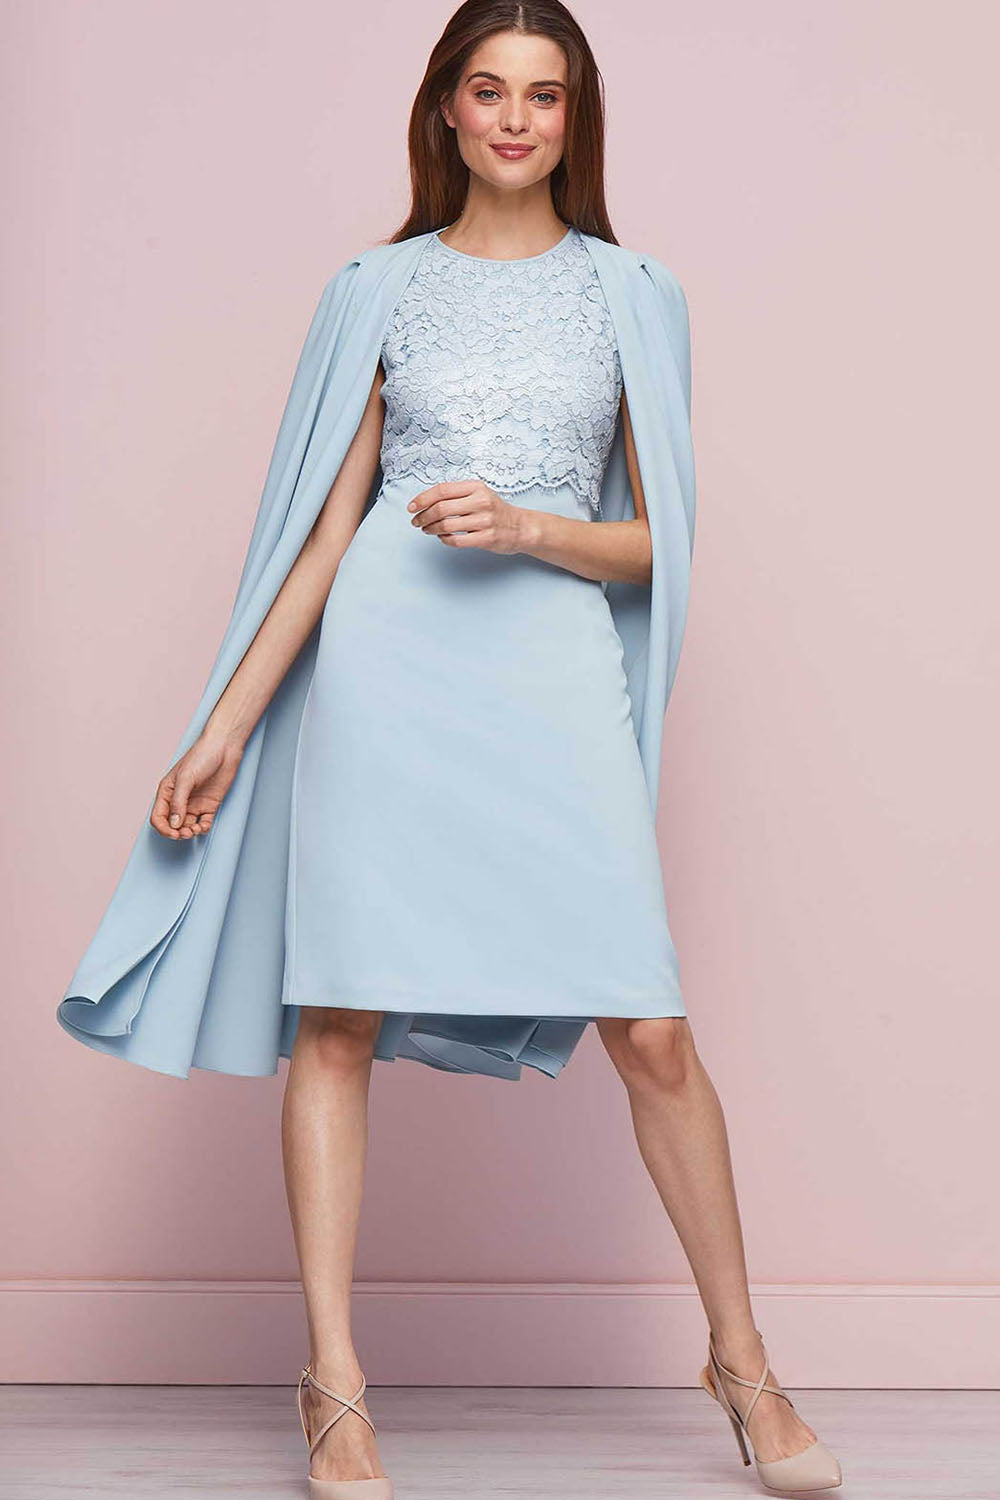 Sky Blue Knee-length Wedding Guest Dresses